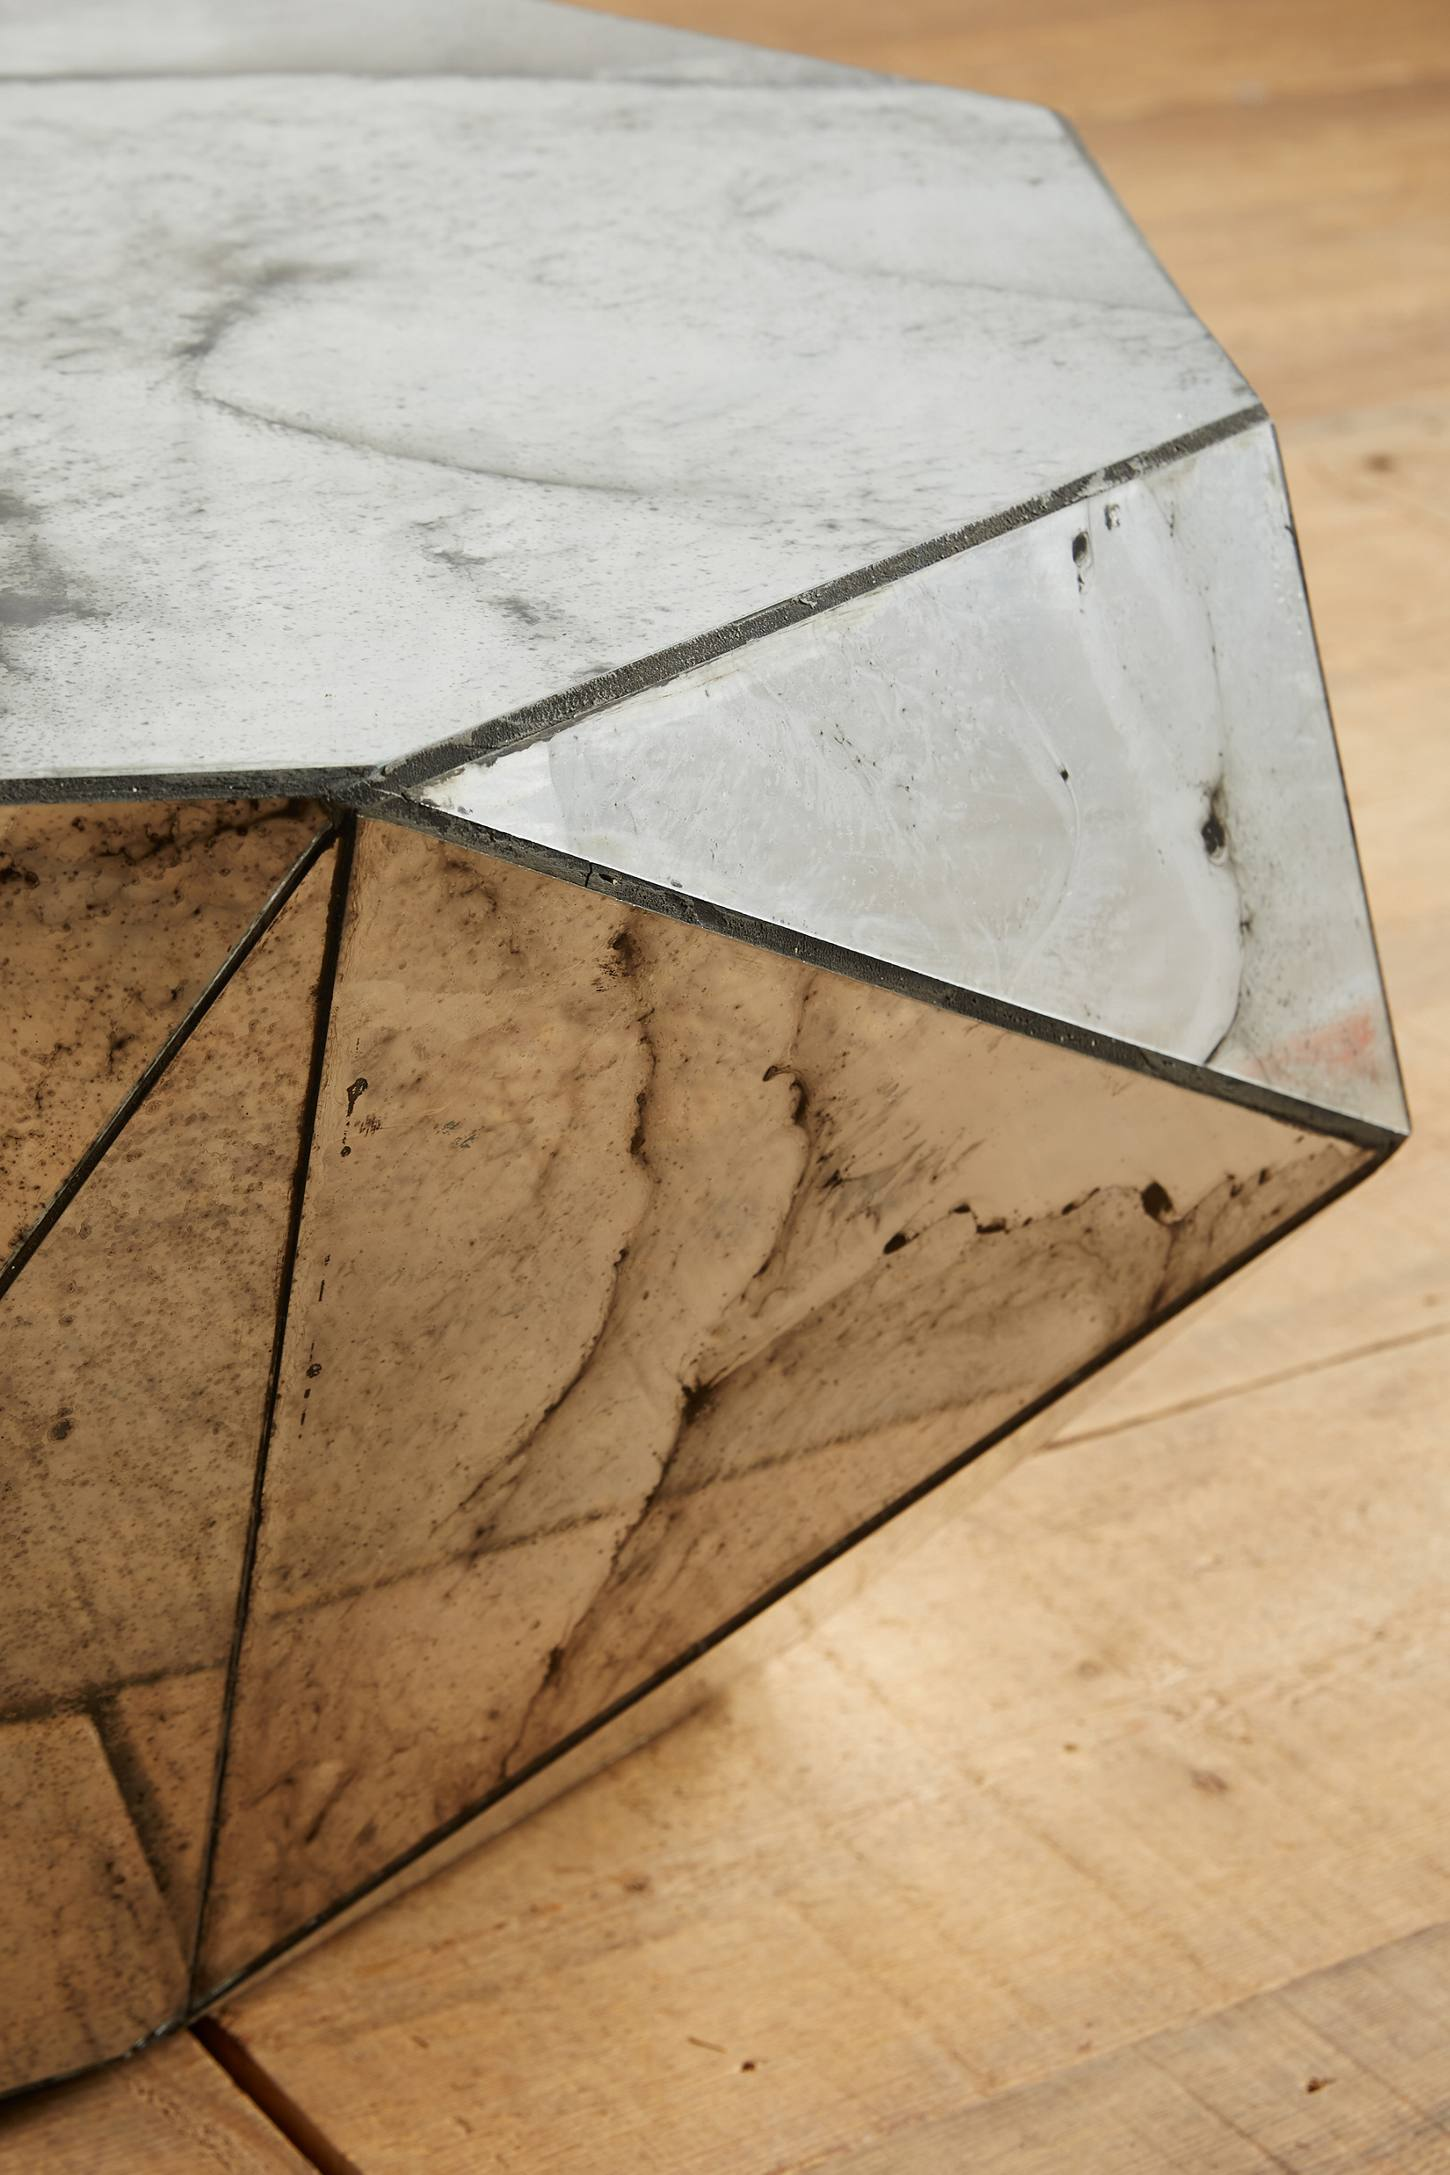 Slide View: 2: Faceted Mirror Coffee Table